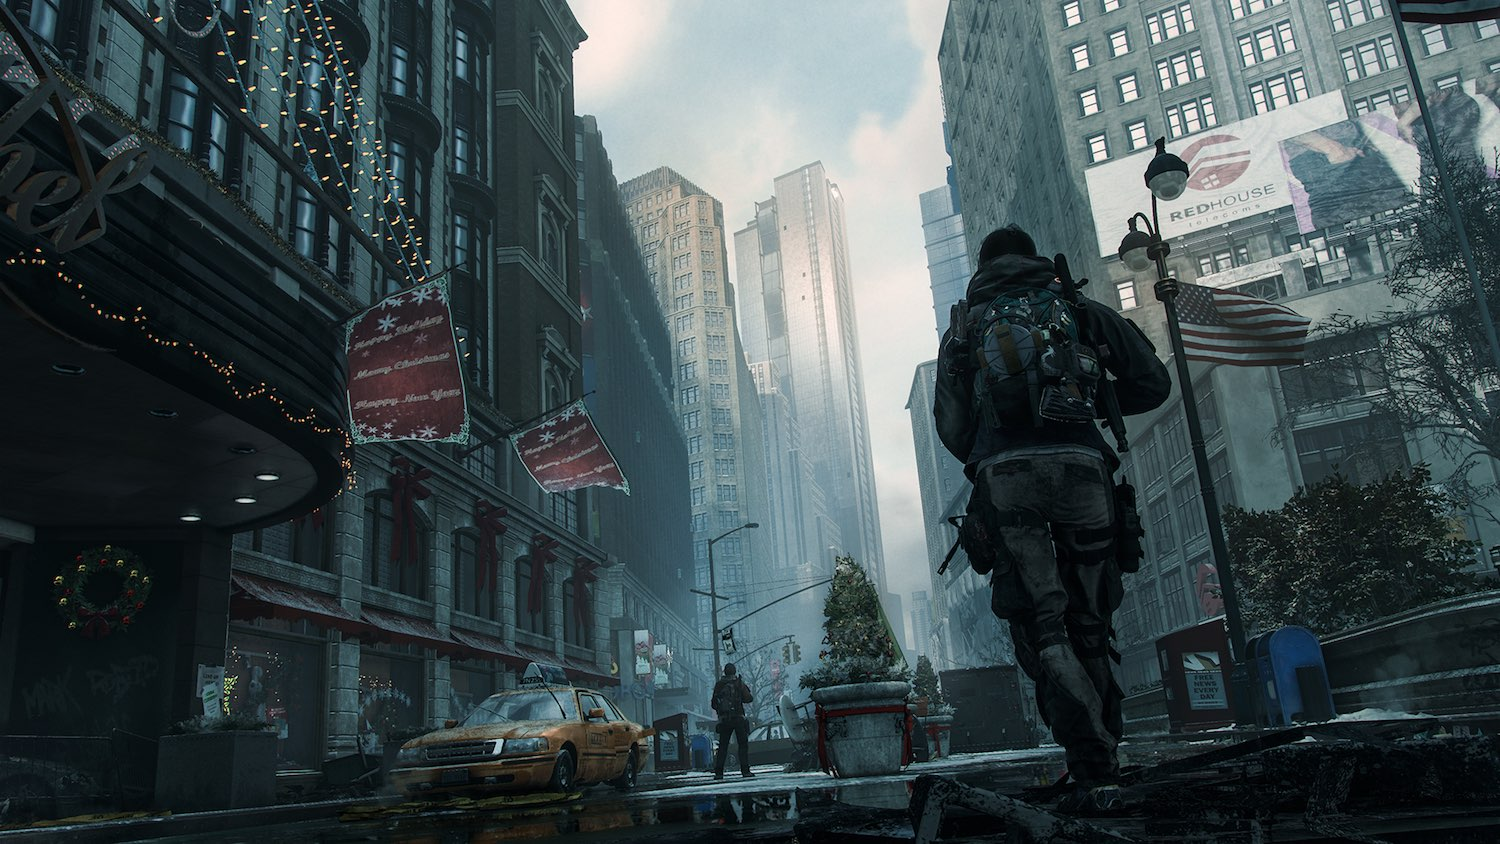 Hoy Jugamos: 'Tom Clancy's The Division' (Beta)